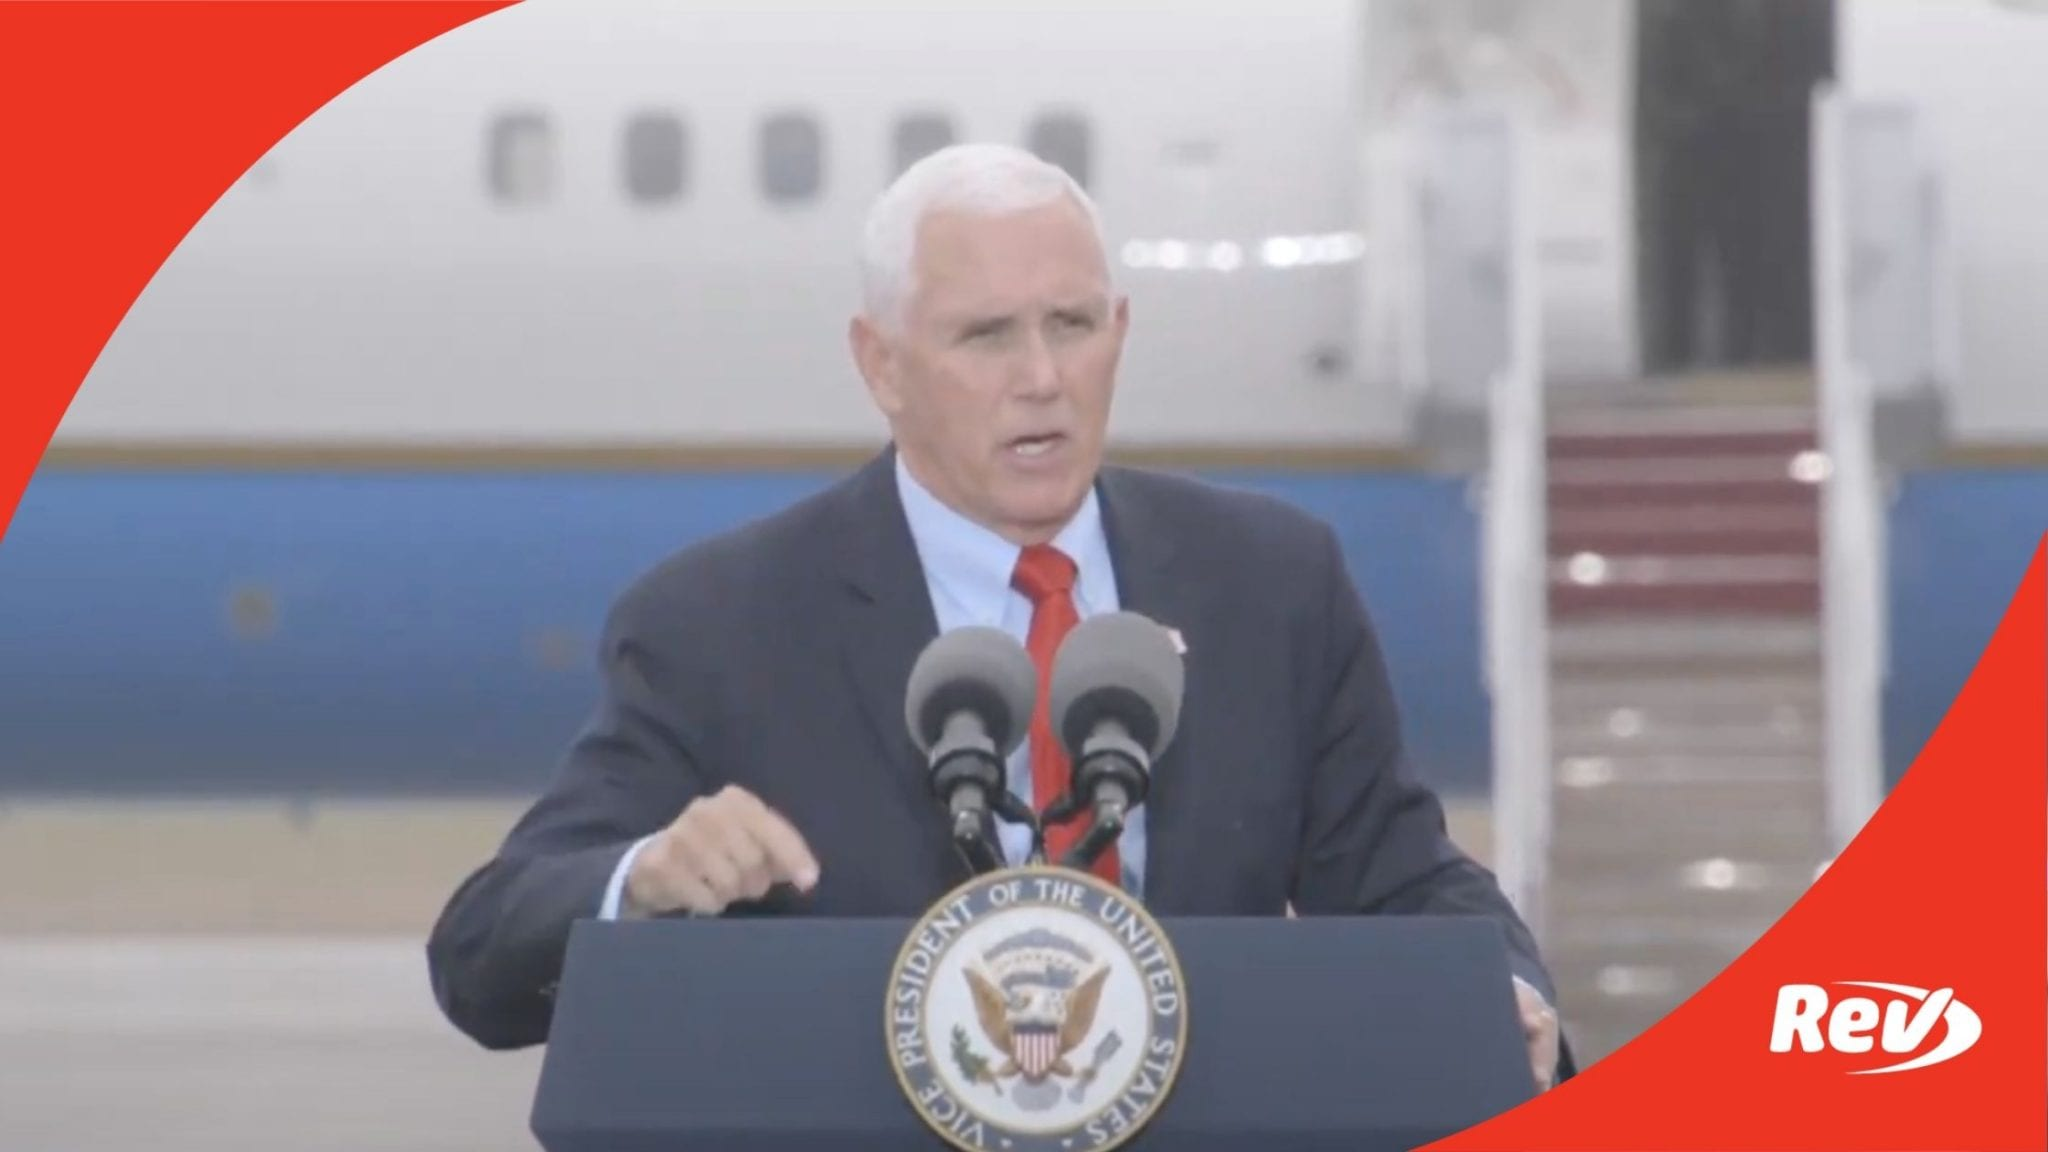 Mike Pence Campaign Speech Portsmouth, NH Transcript October 21